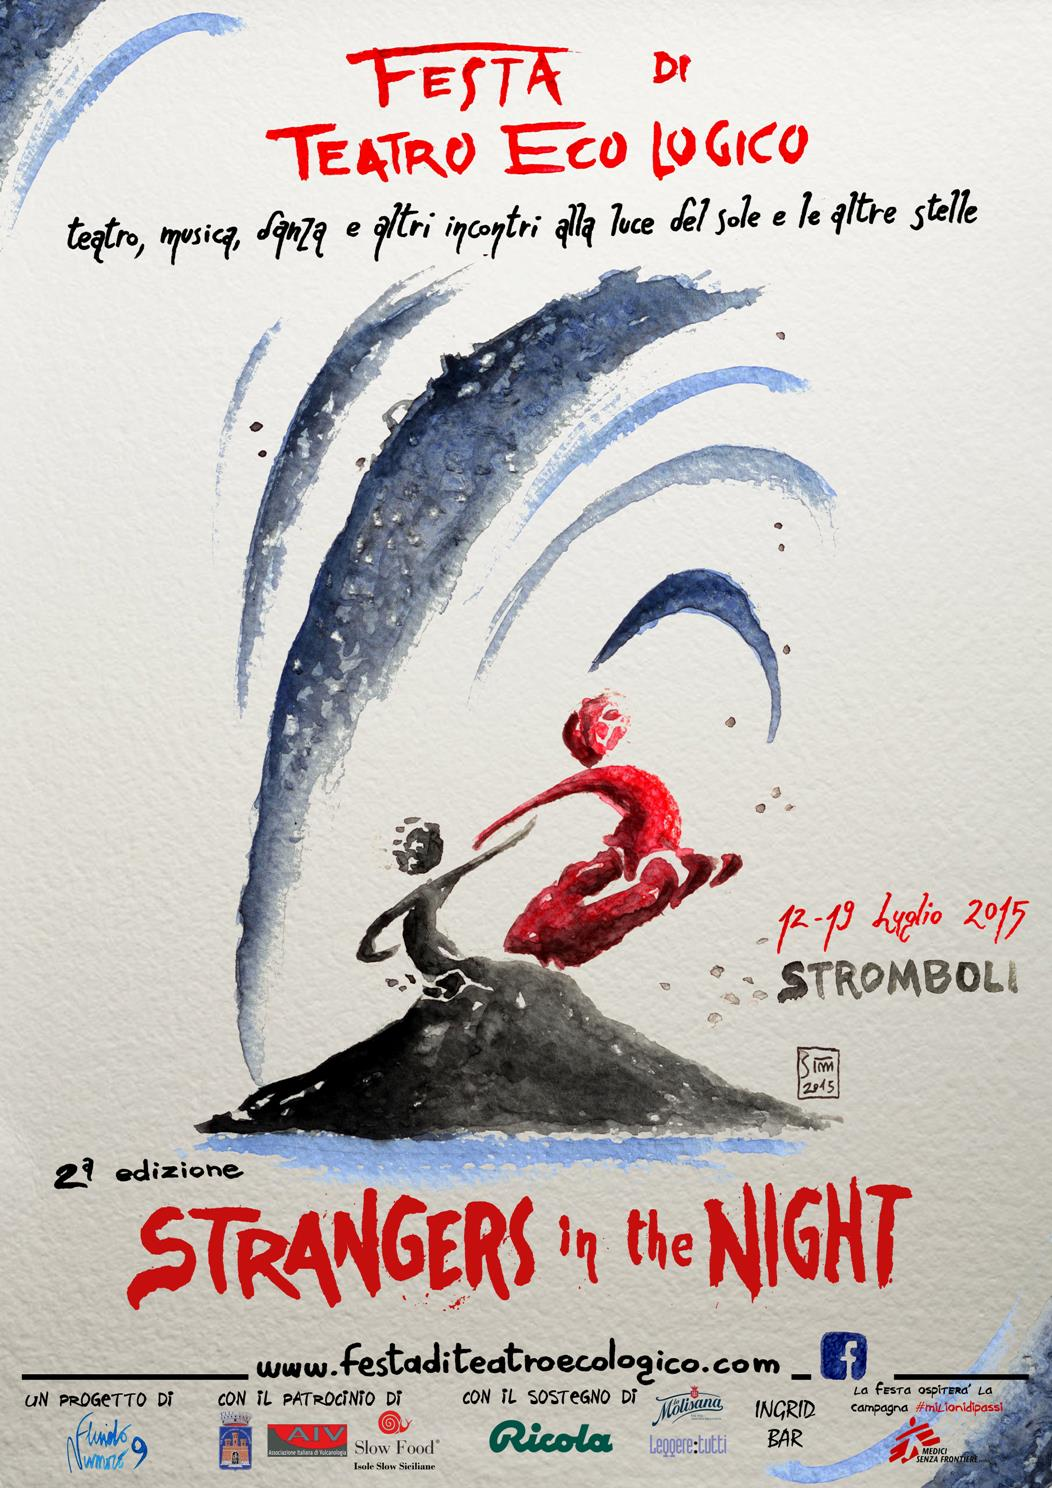 "Stromboli:""Strangers in the night"", la festa del teatro EcoLogico"